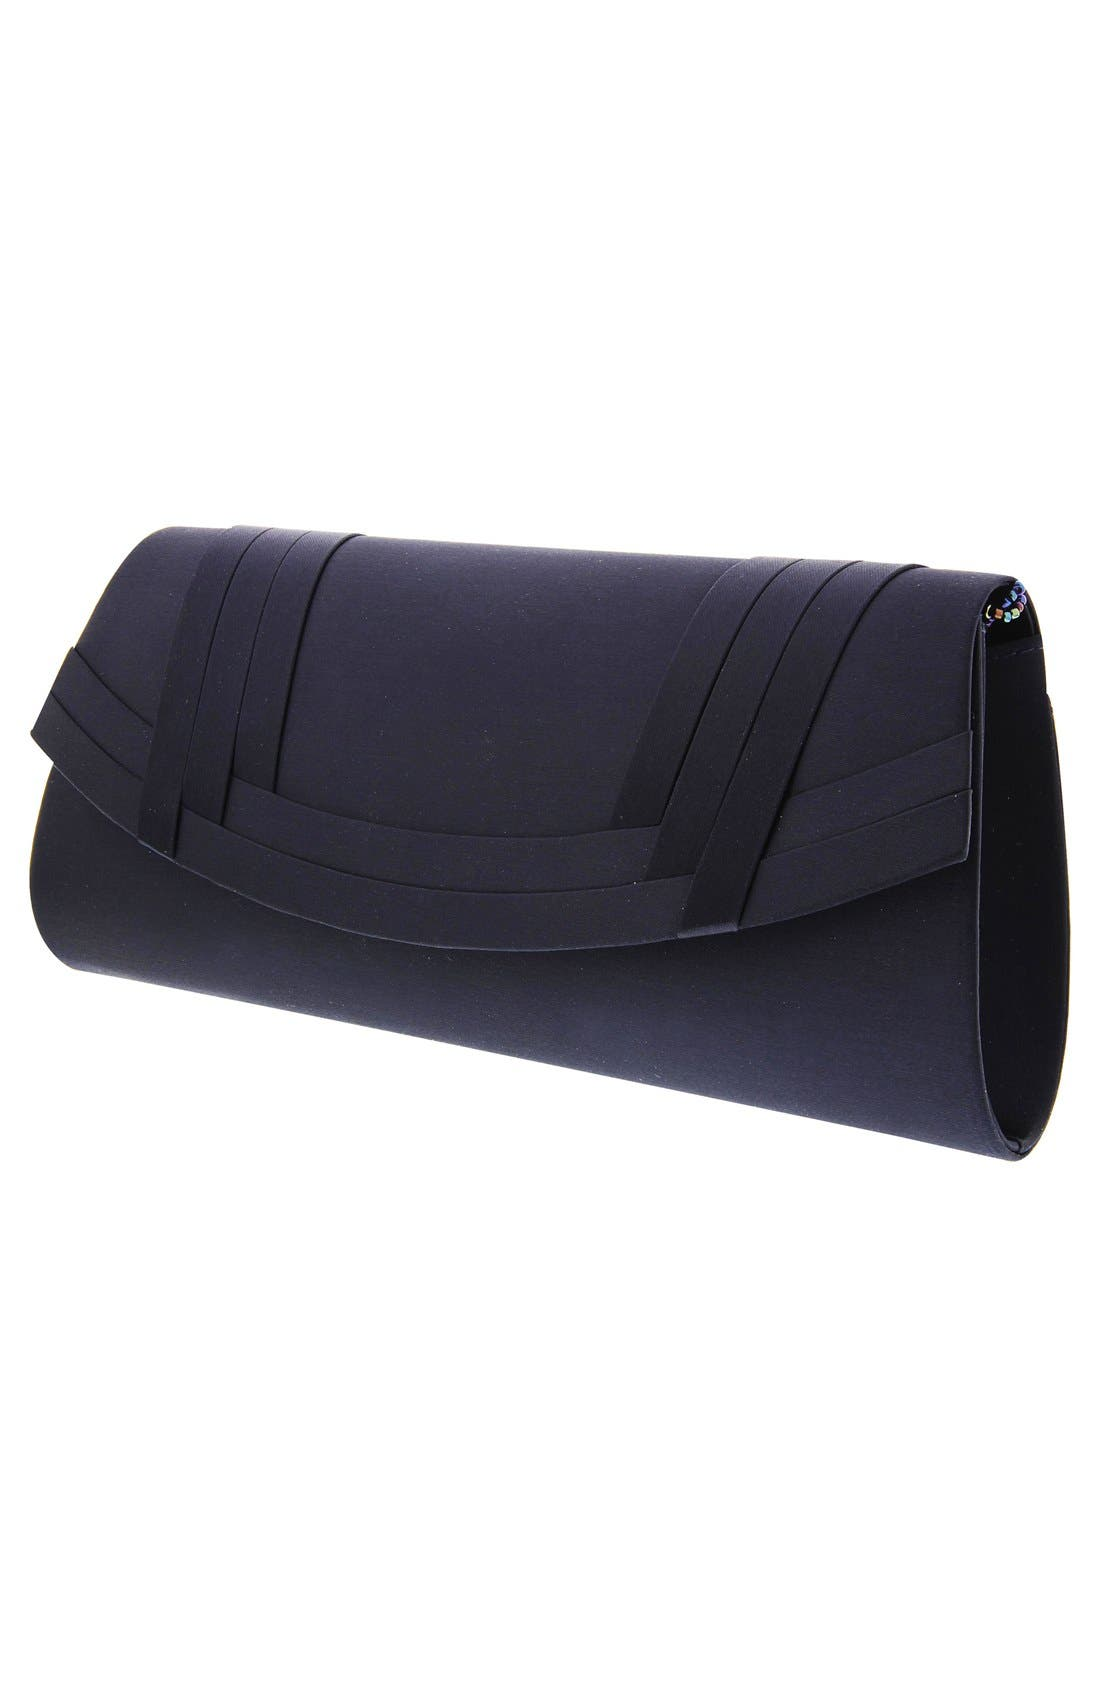 Avis Pleated Classic Clutch,                             Alternate thumbnail 11, color,                             NAVY NOBLE SATIN